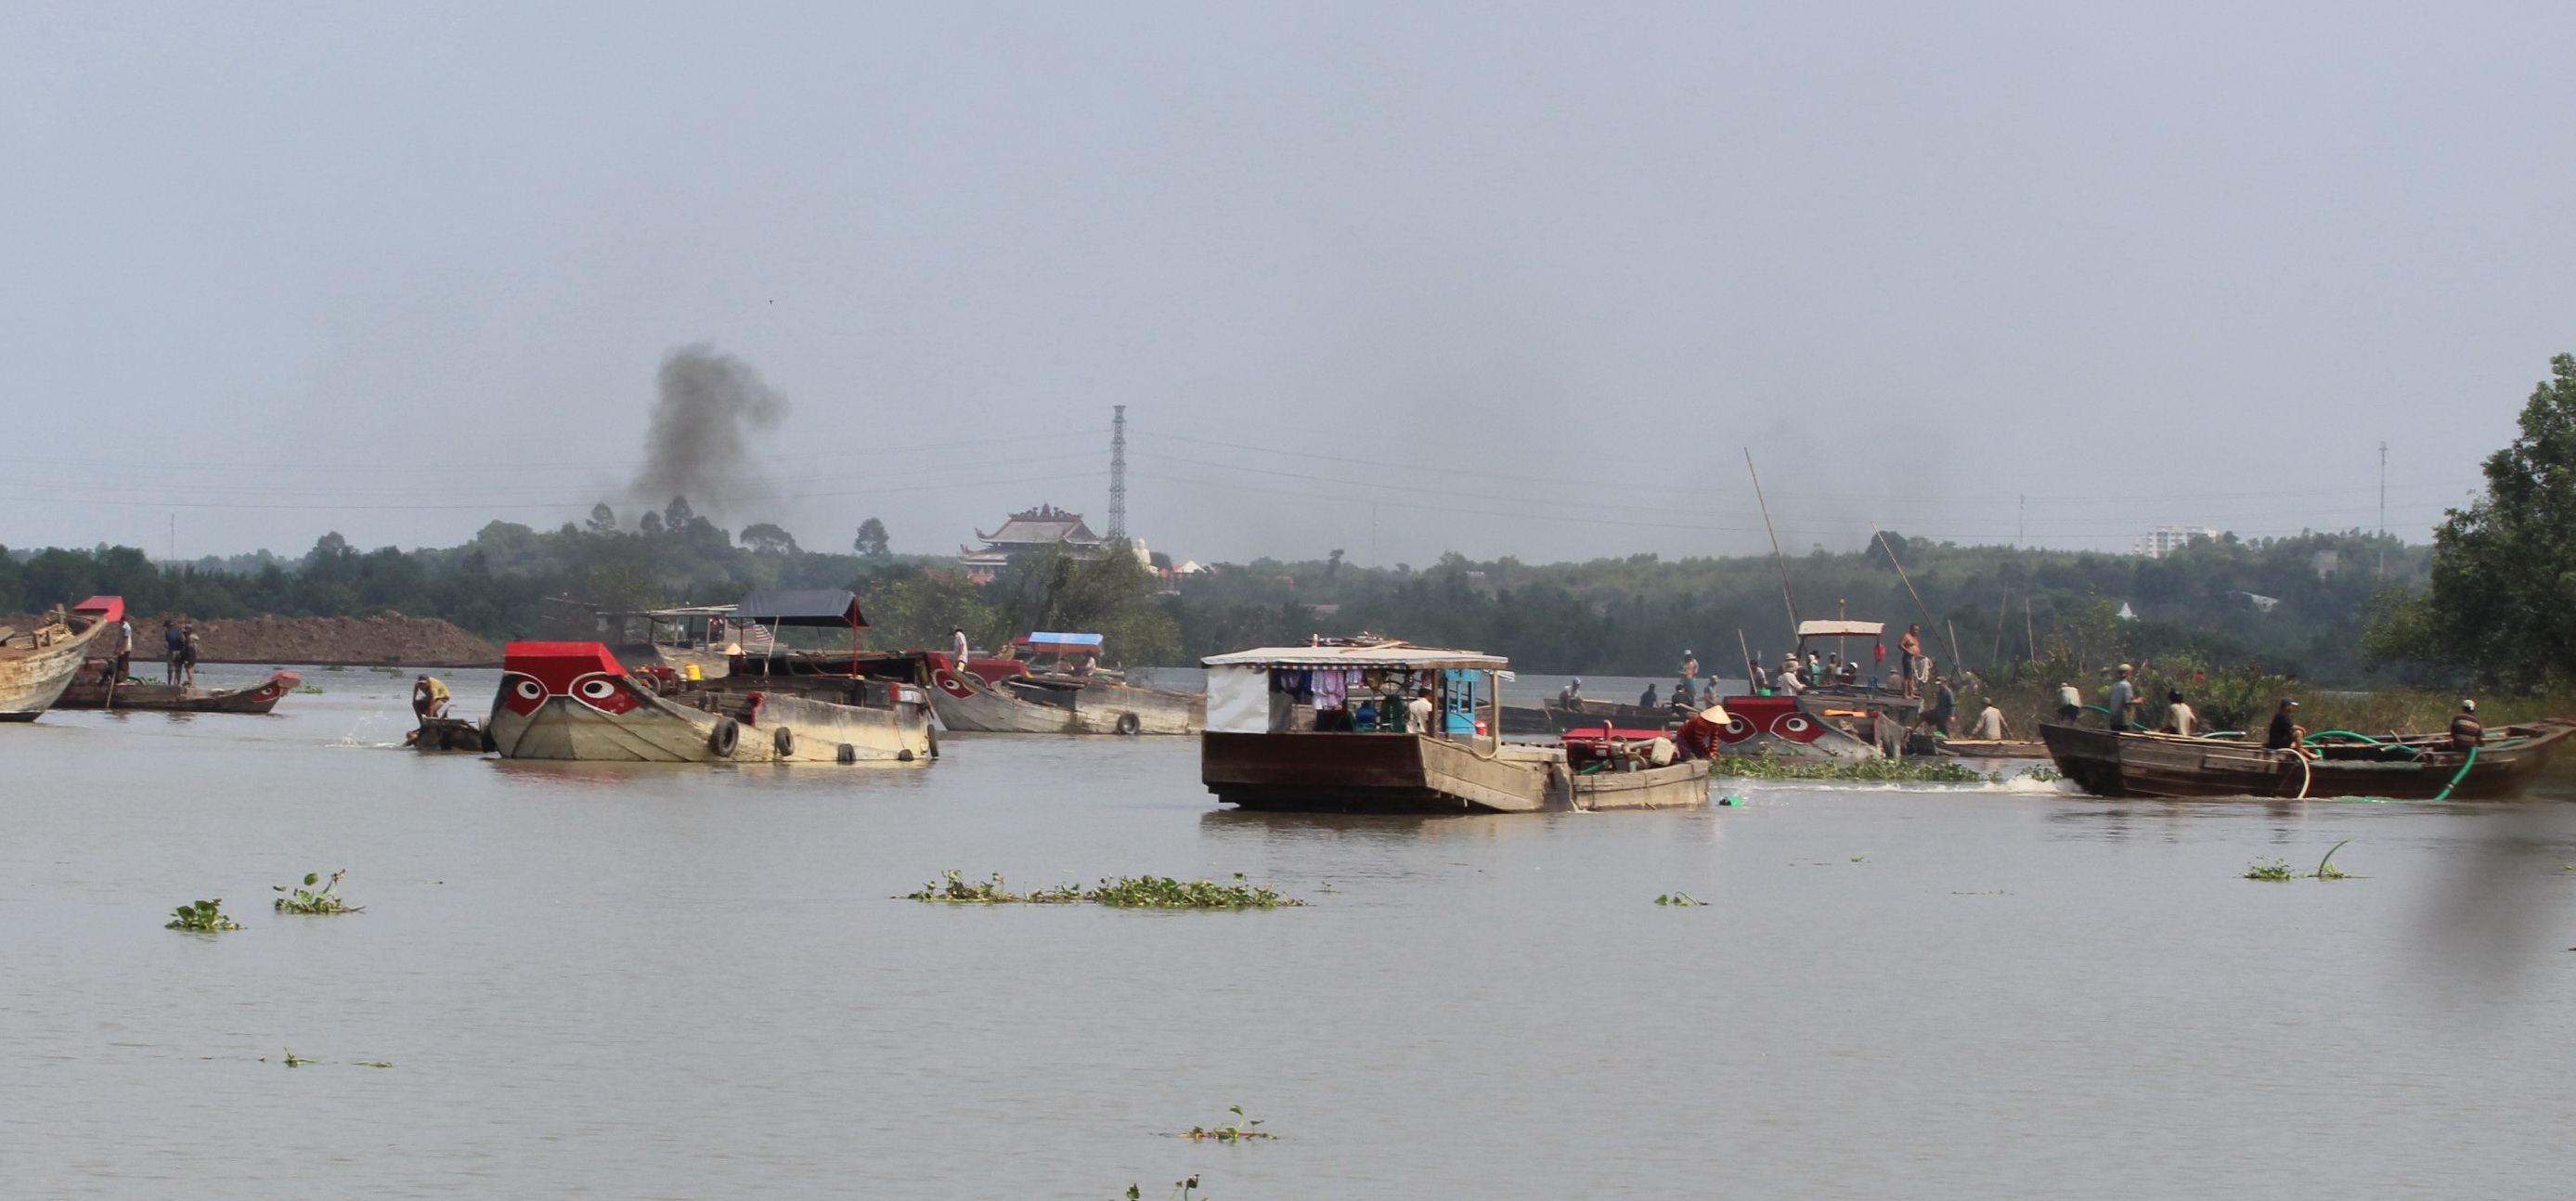 Dozens of sampans and large boats riddle an area which used to be locals' land.